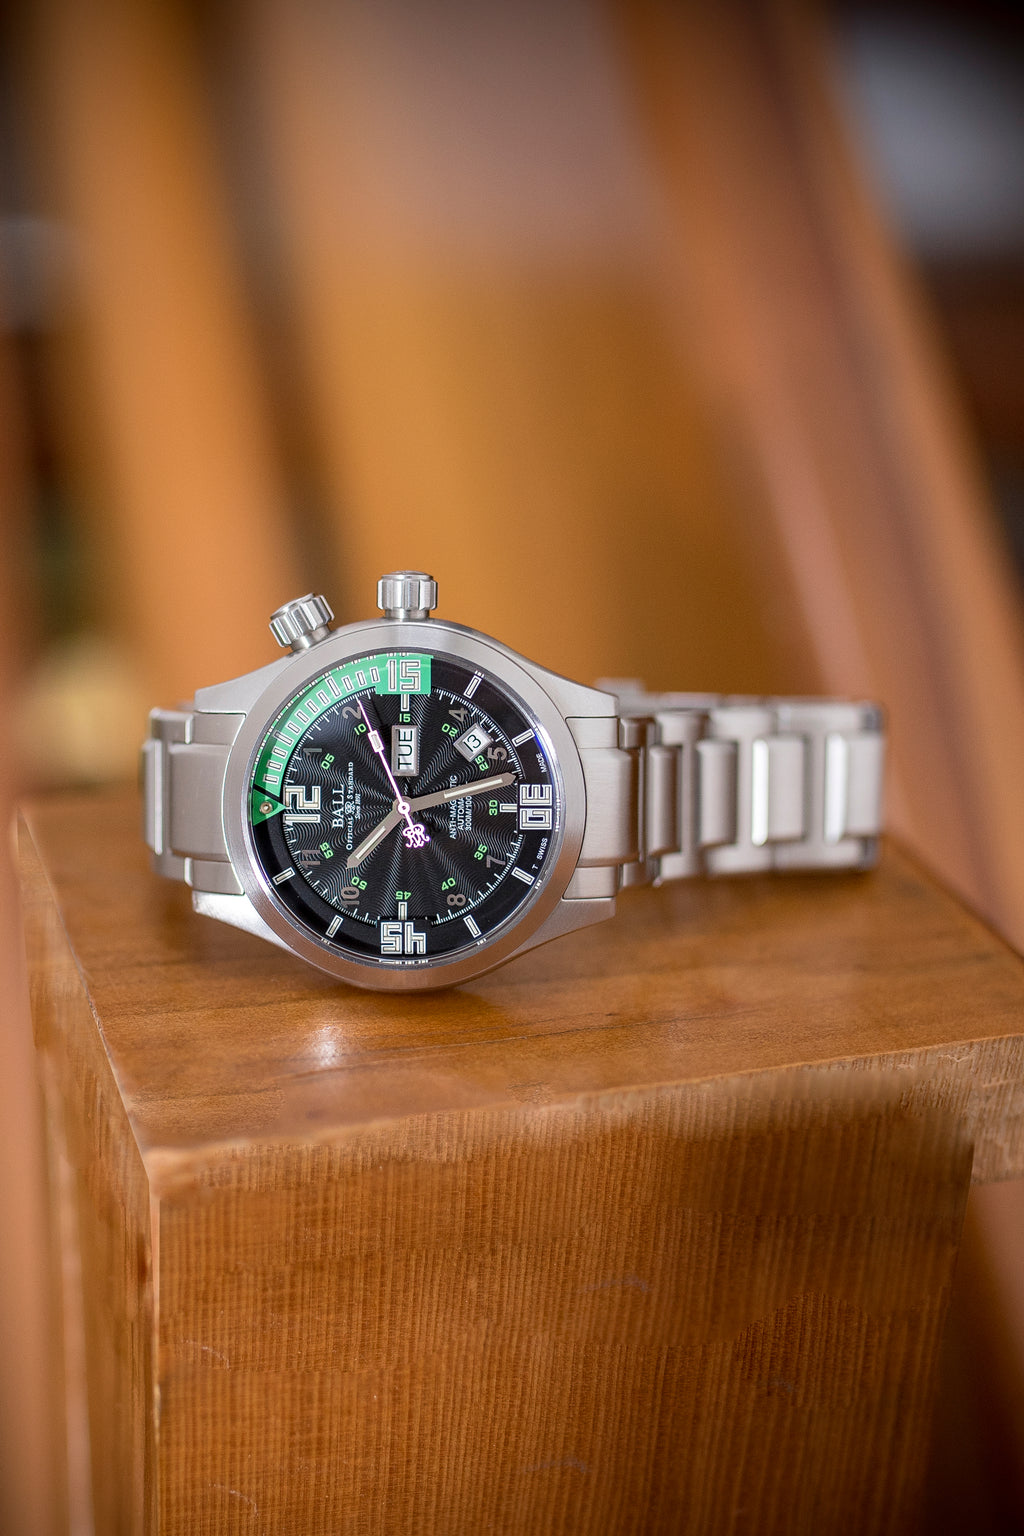 BALL DM1020A Engineer Master II Diver Watch 42mm – Black & Green Dial